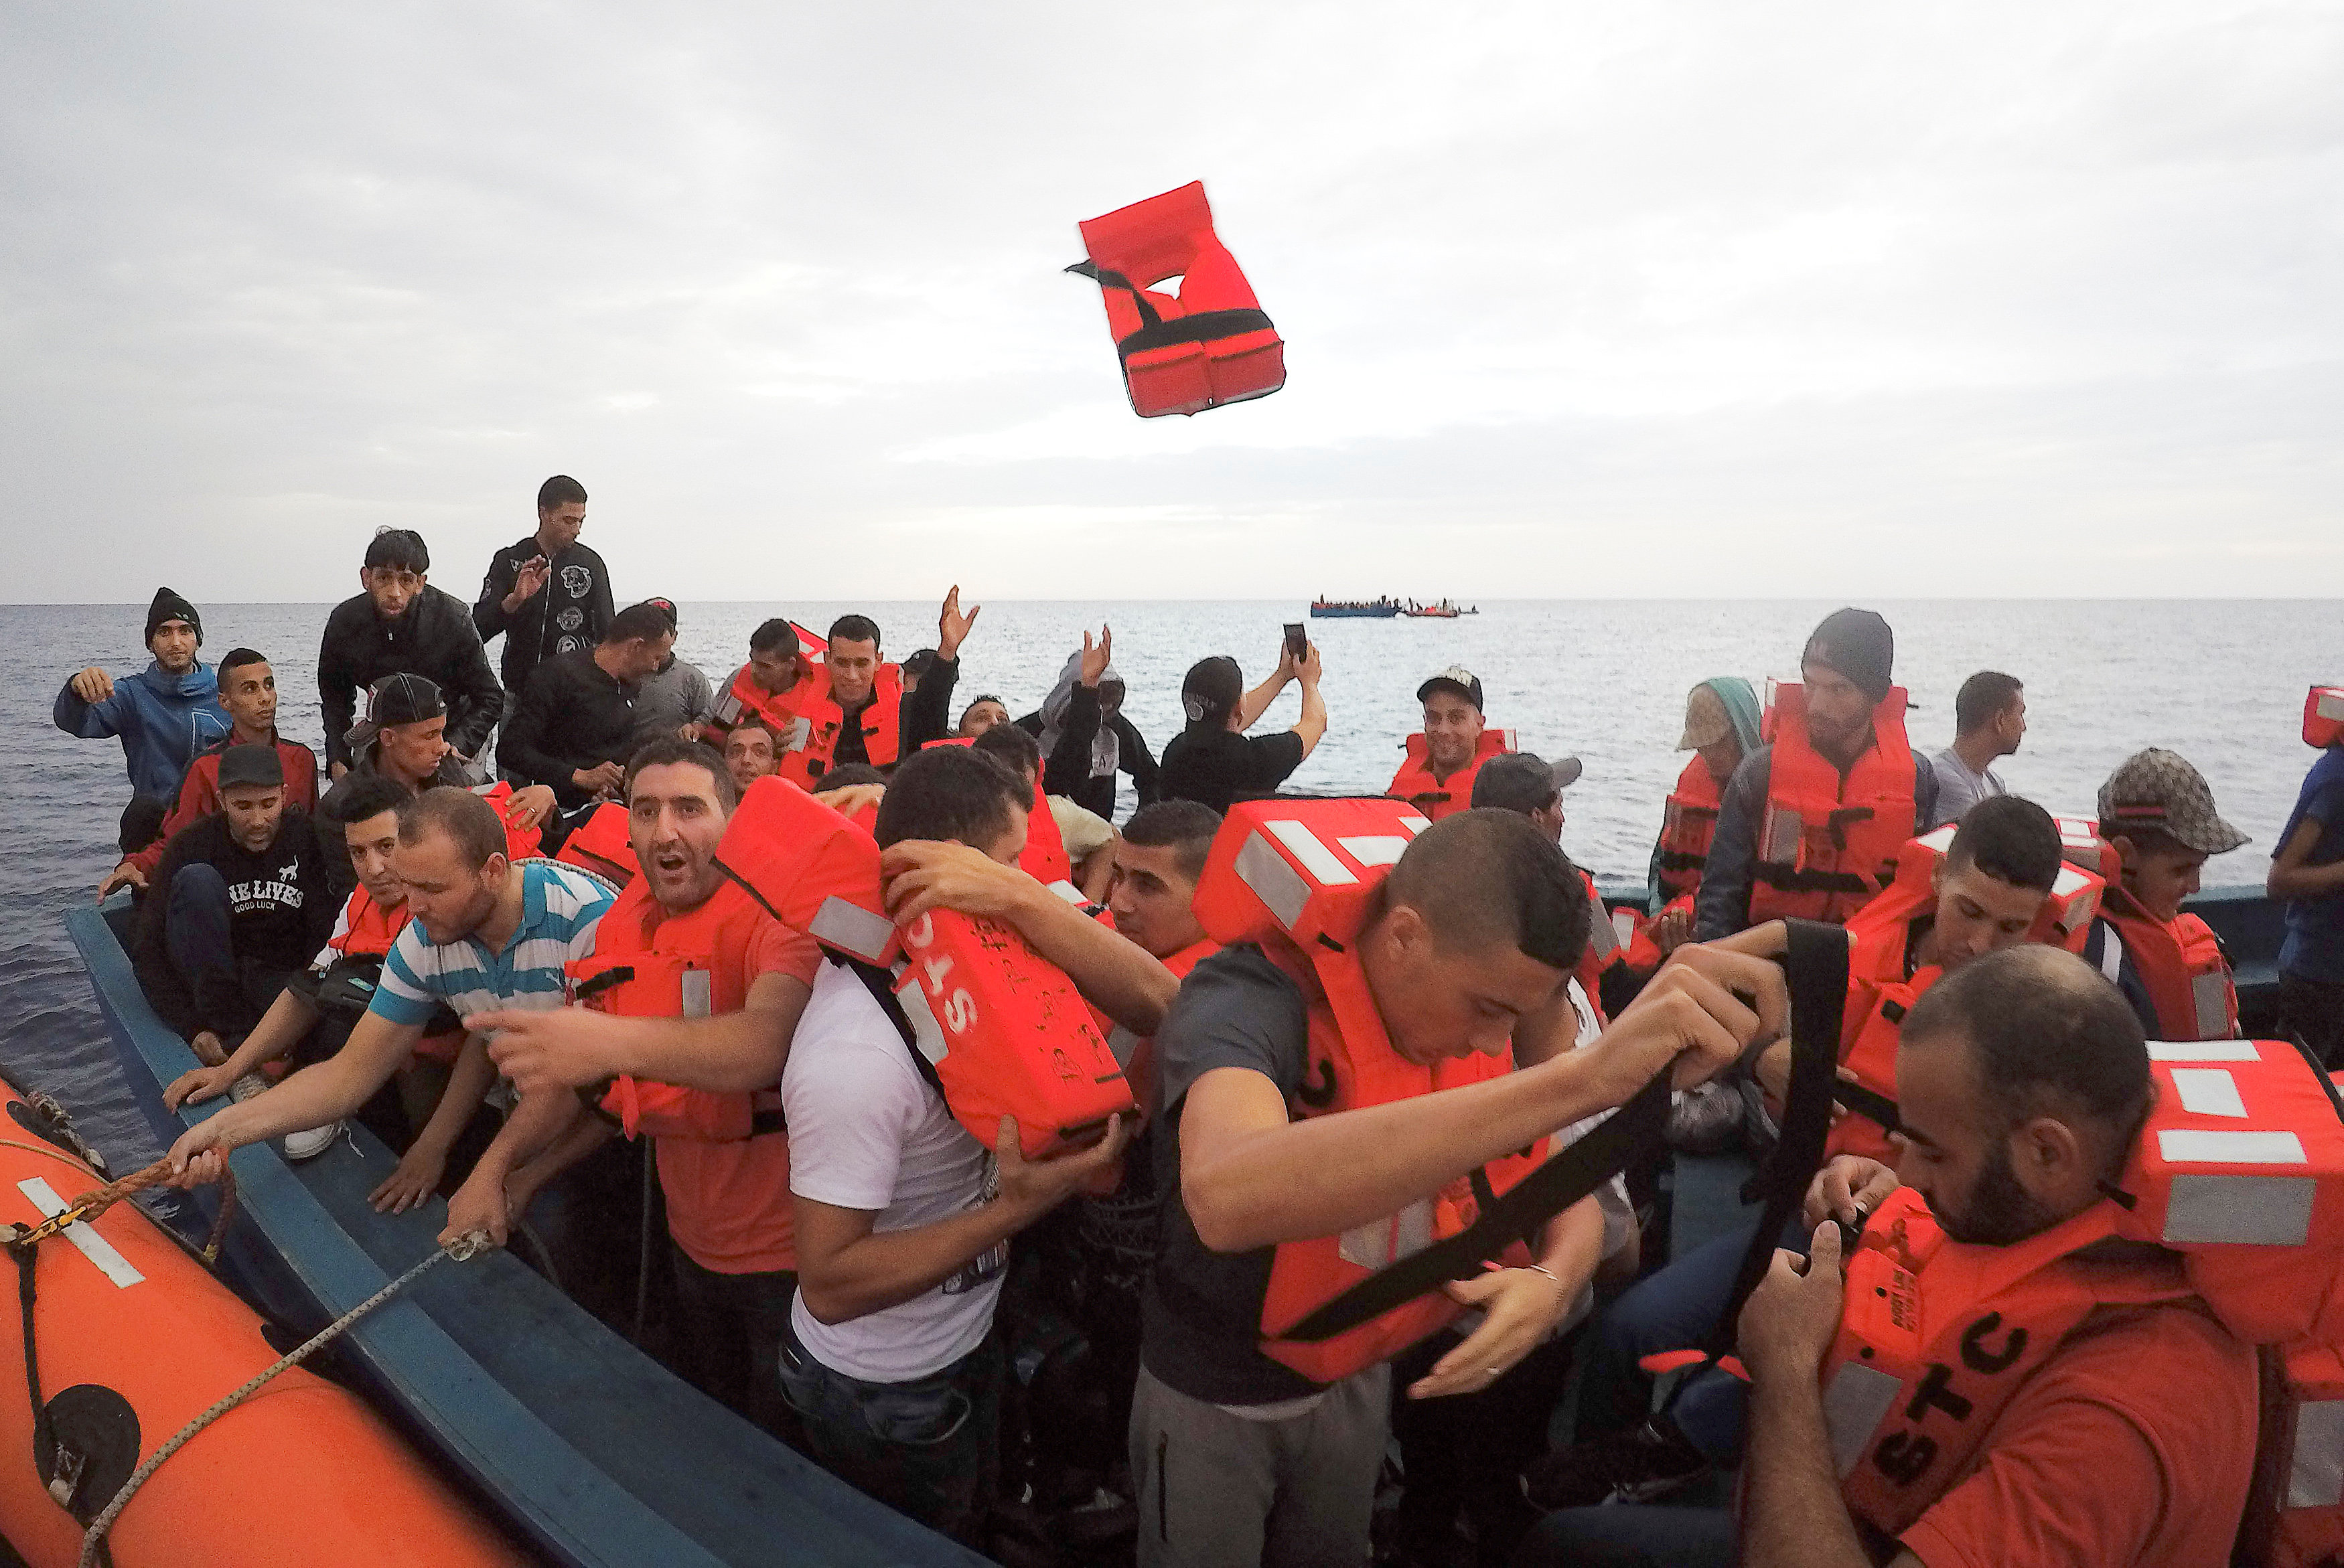 Hundreds of migrants rescued in boats off Libyan coast